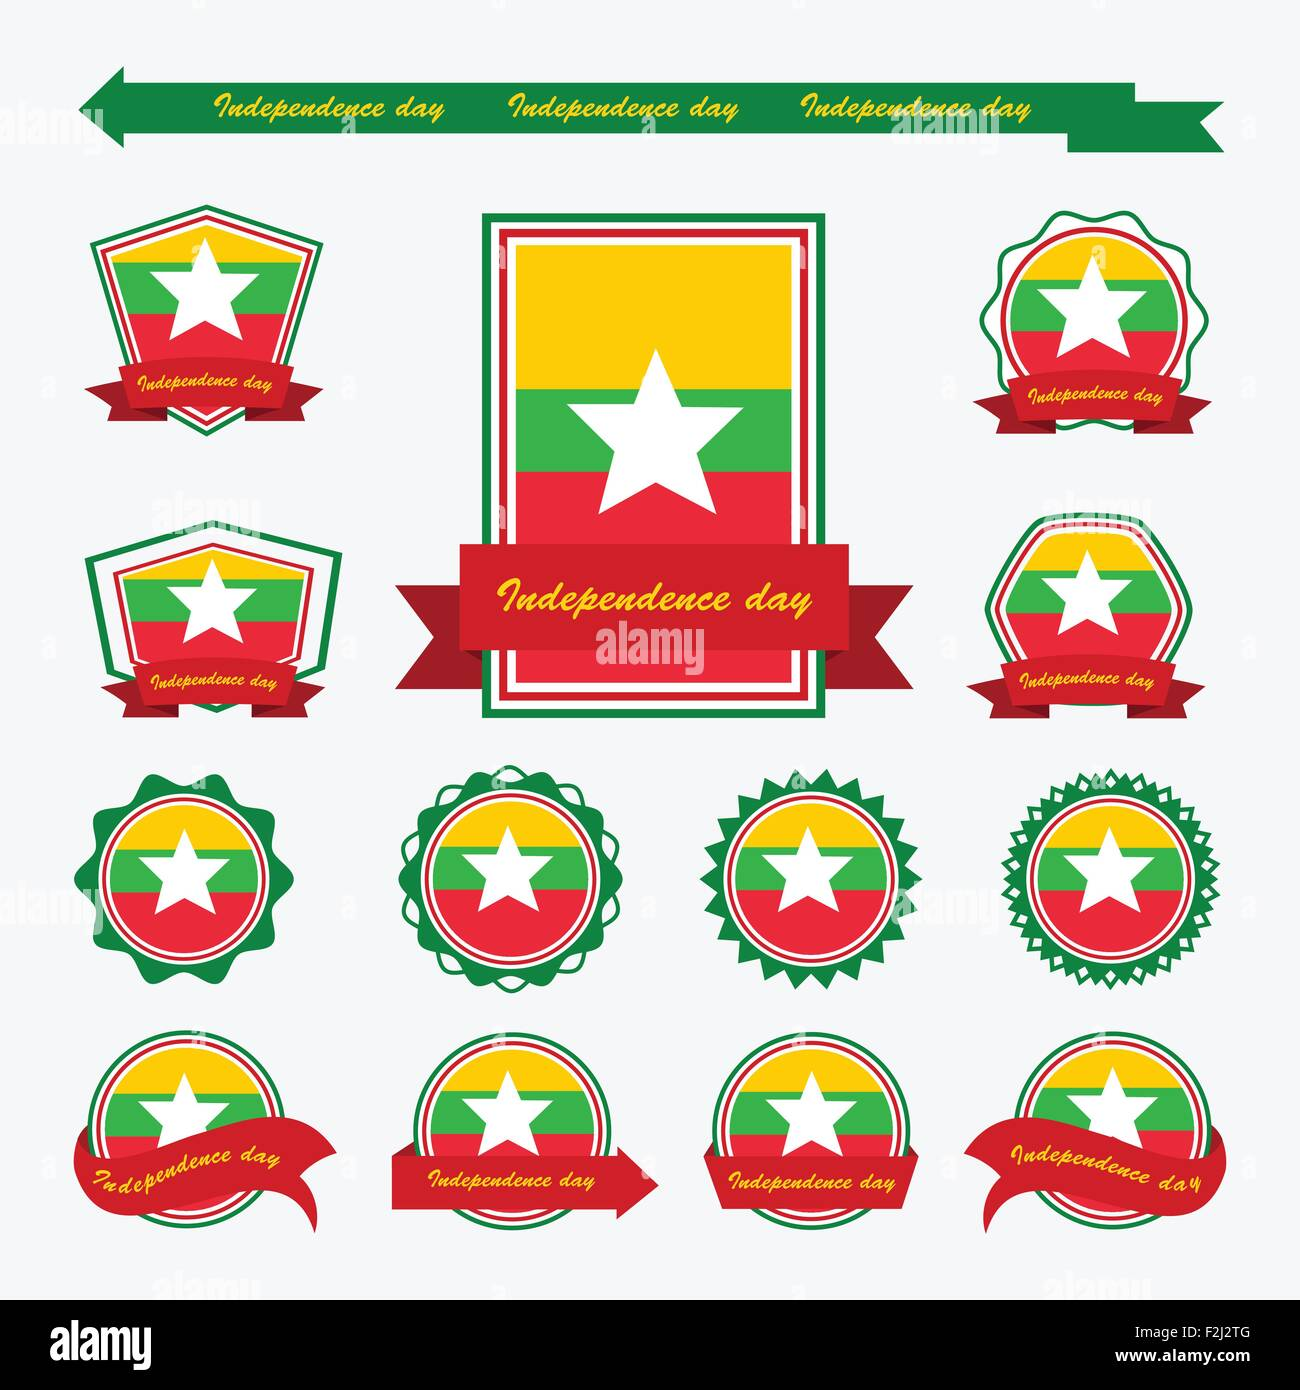 myanmar independence day flags infographic design - Stock Vector